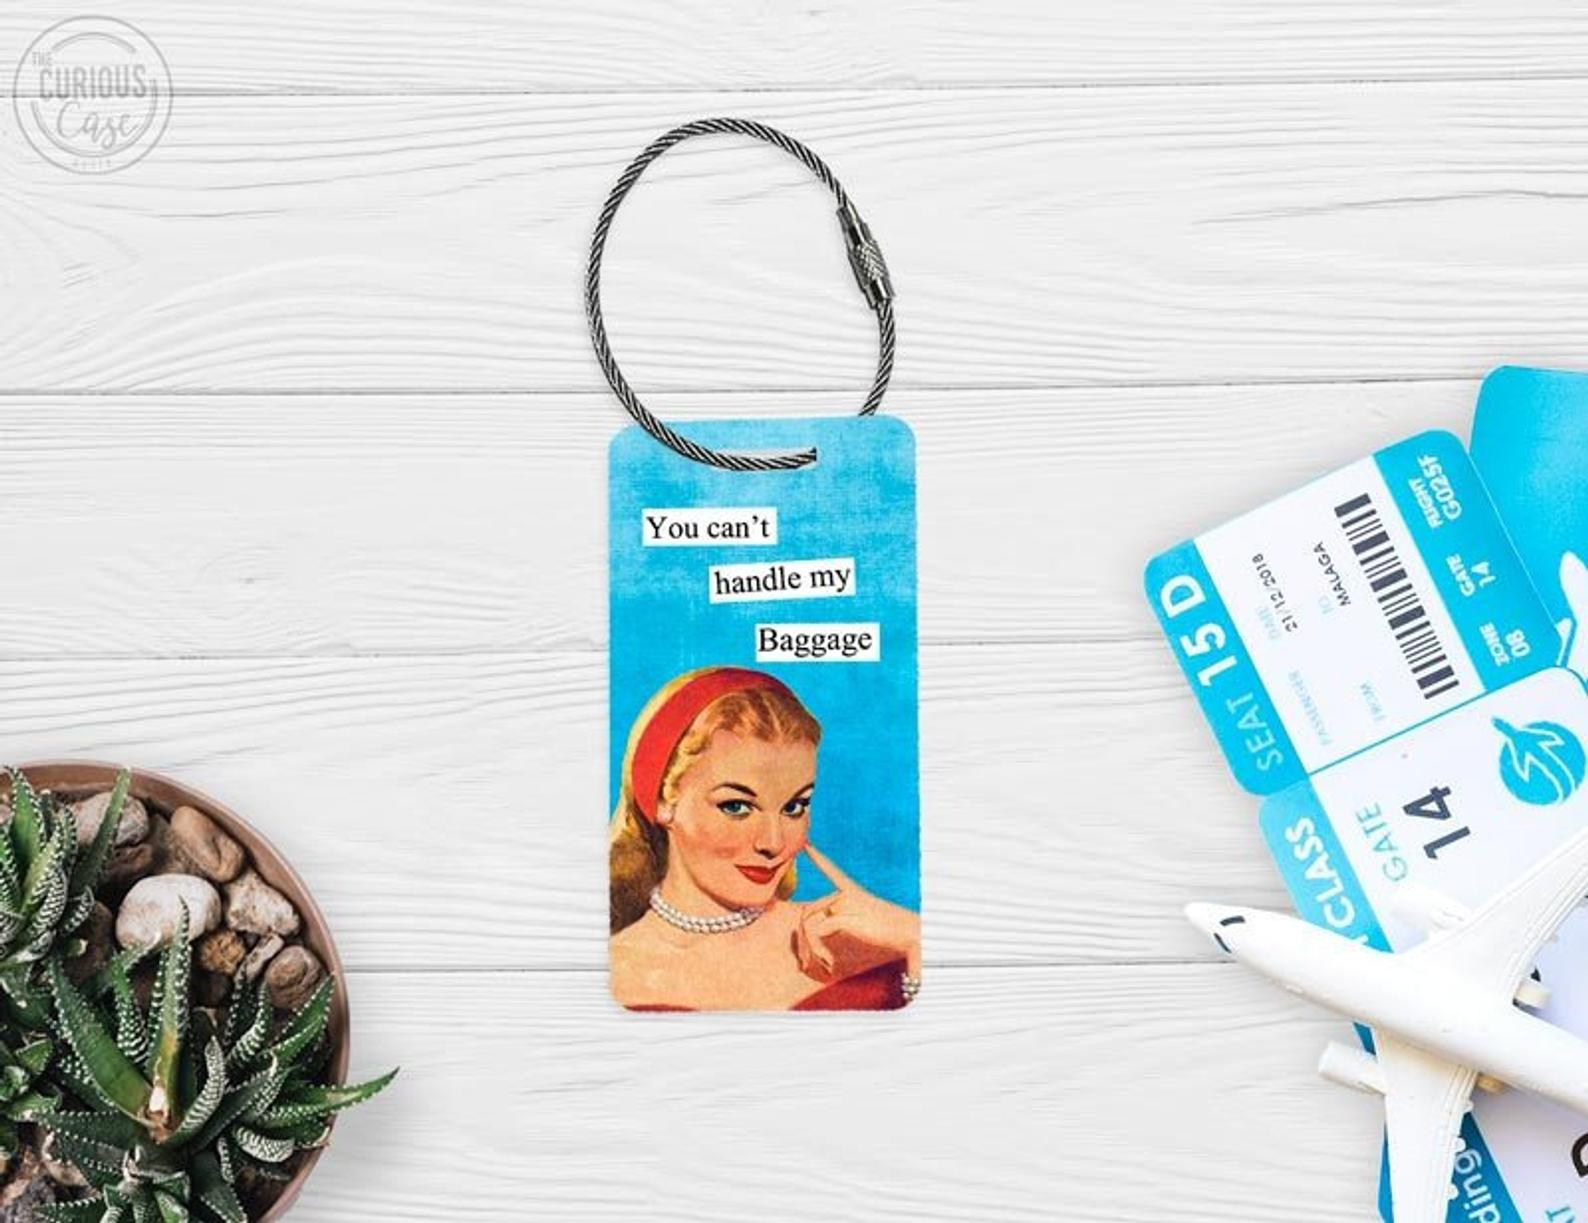 funny luggage tags - you can't handle my baggage